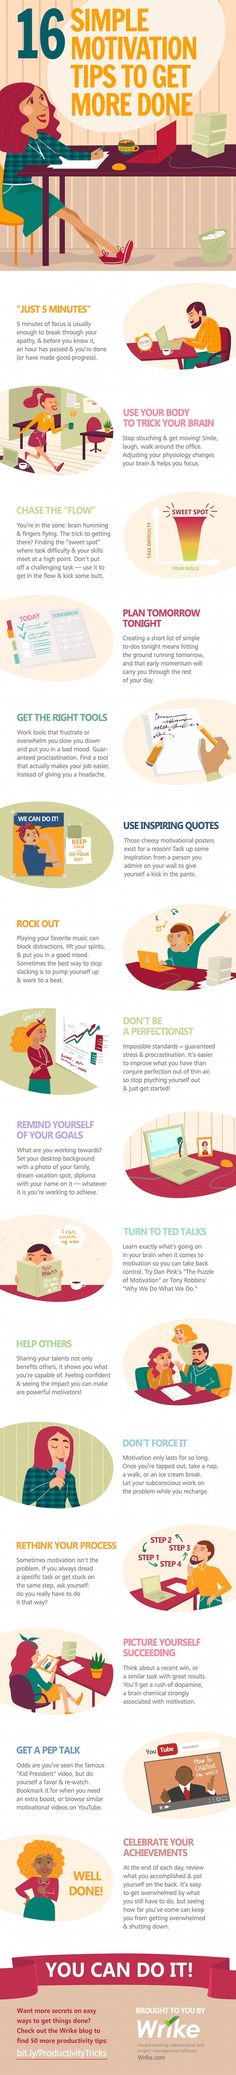 16 Simple Motivation Tricks and Hacks That Work - The Muse: